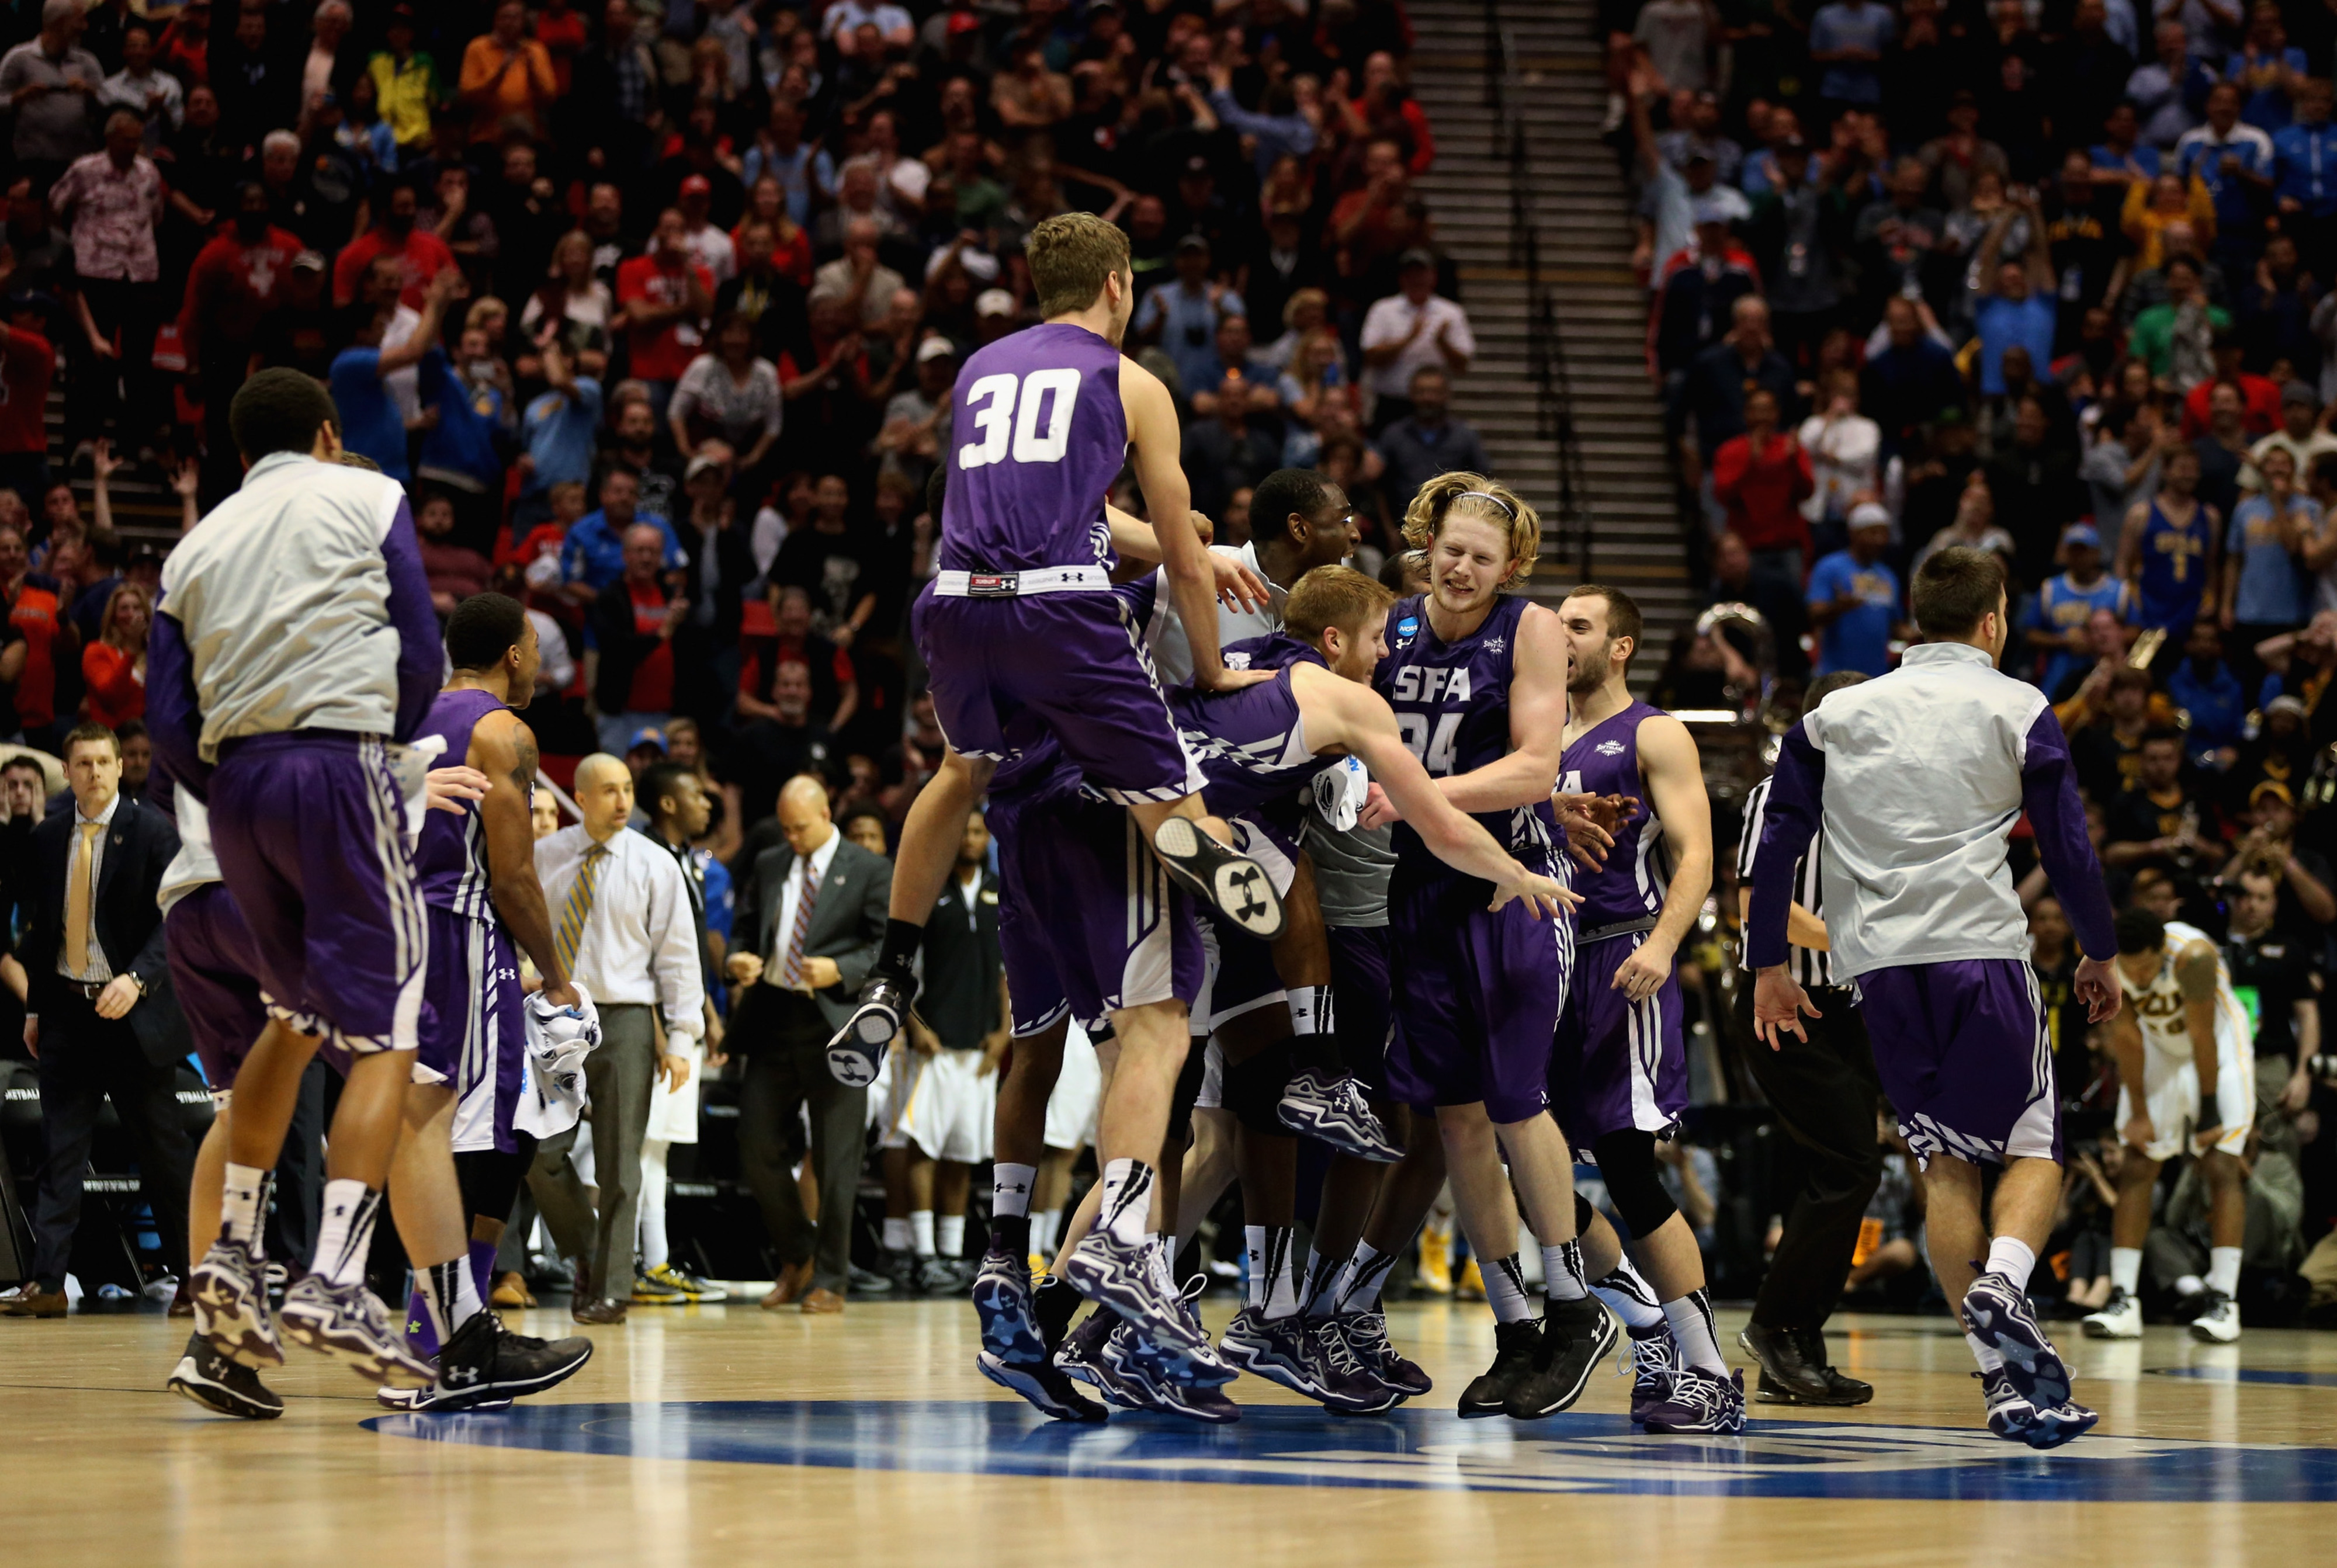 Will this March bring more jubilation for the Lumberjacks?